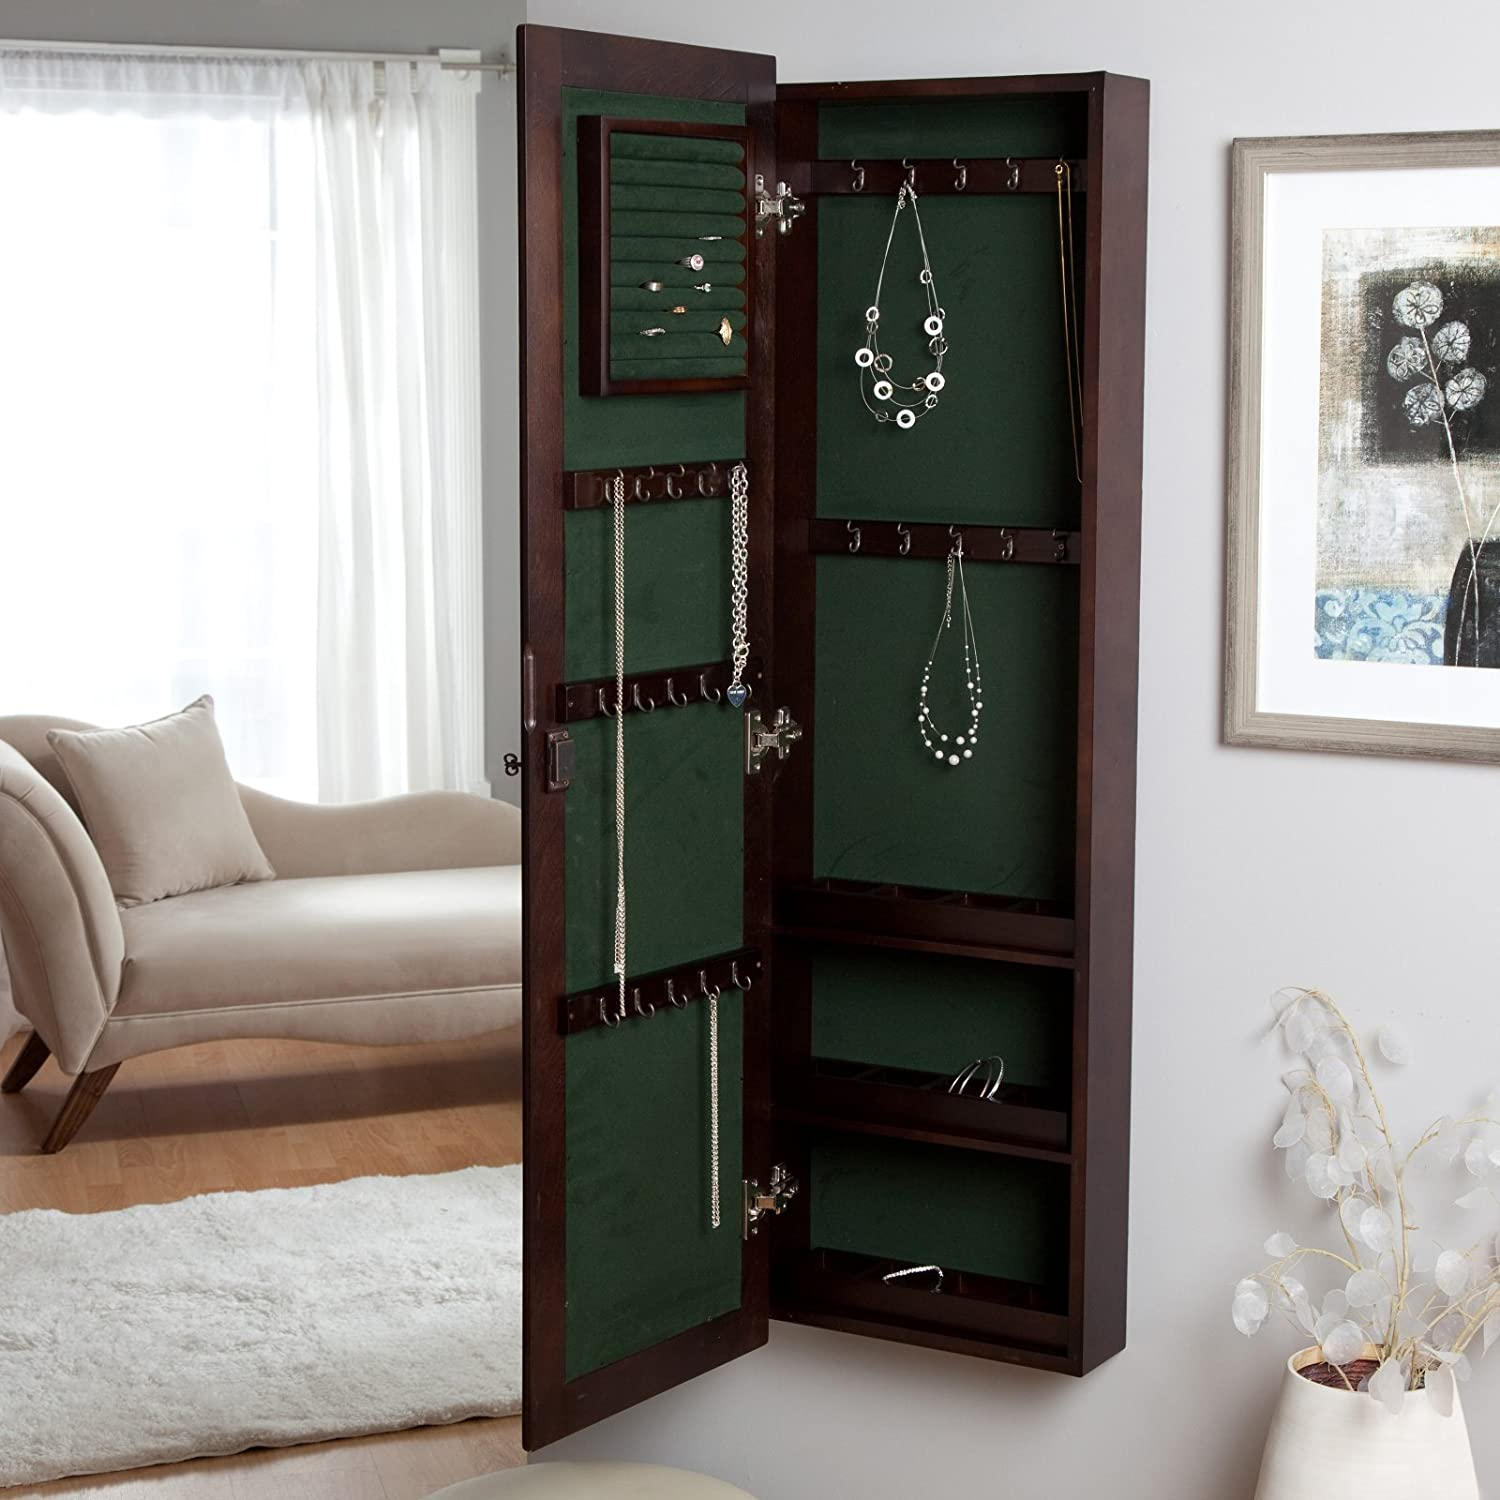 Amazoncom WallMounted Locking Wooden Jewelry Armoire 145W x